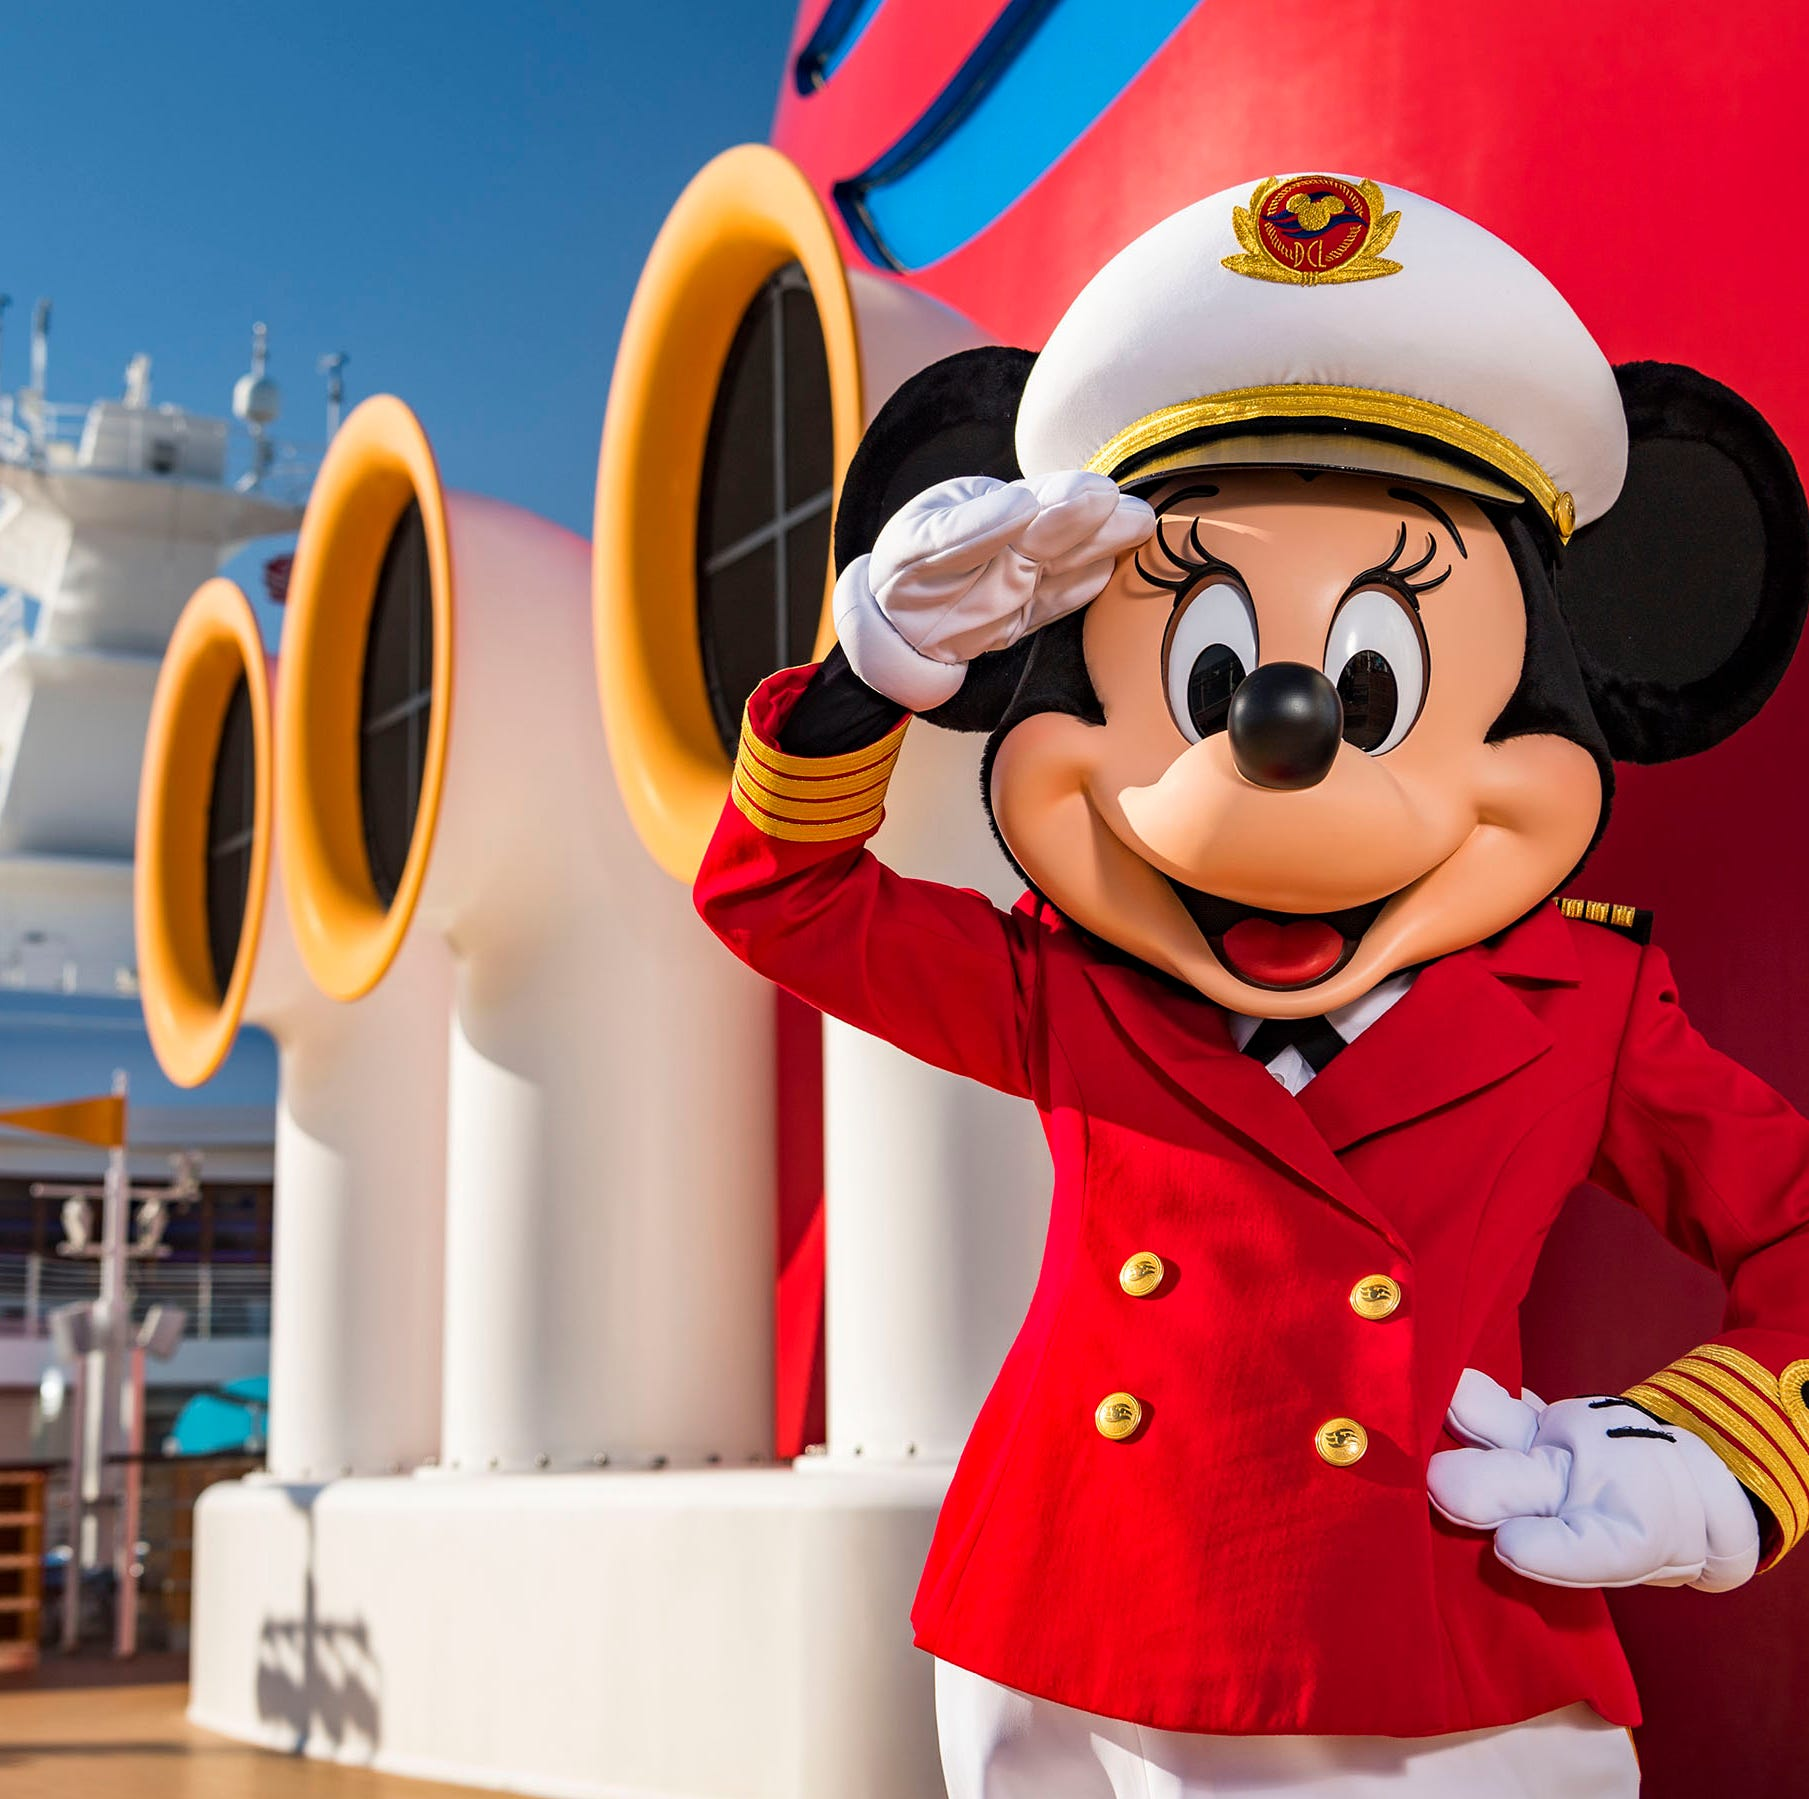 Captain Minnie Mouse is delighting children aboard all Disney Cruise Line ships, spreading the message of exploring new horizons as part of a collection of new initiatives aiming to inspire the next generation of female leaders in the maritime industry. The debut of Captain Minnie Mouse, plus new youth programs and the funding of scholarships, are designed to empower girls and young women to pursue careers in the cruise industry and chart a course for success.